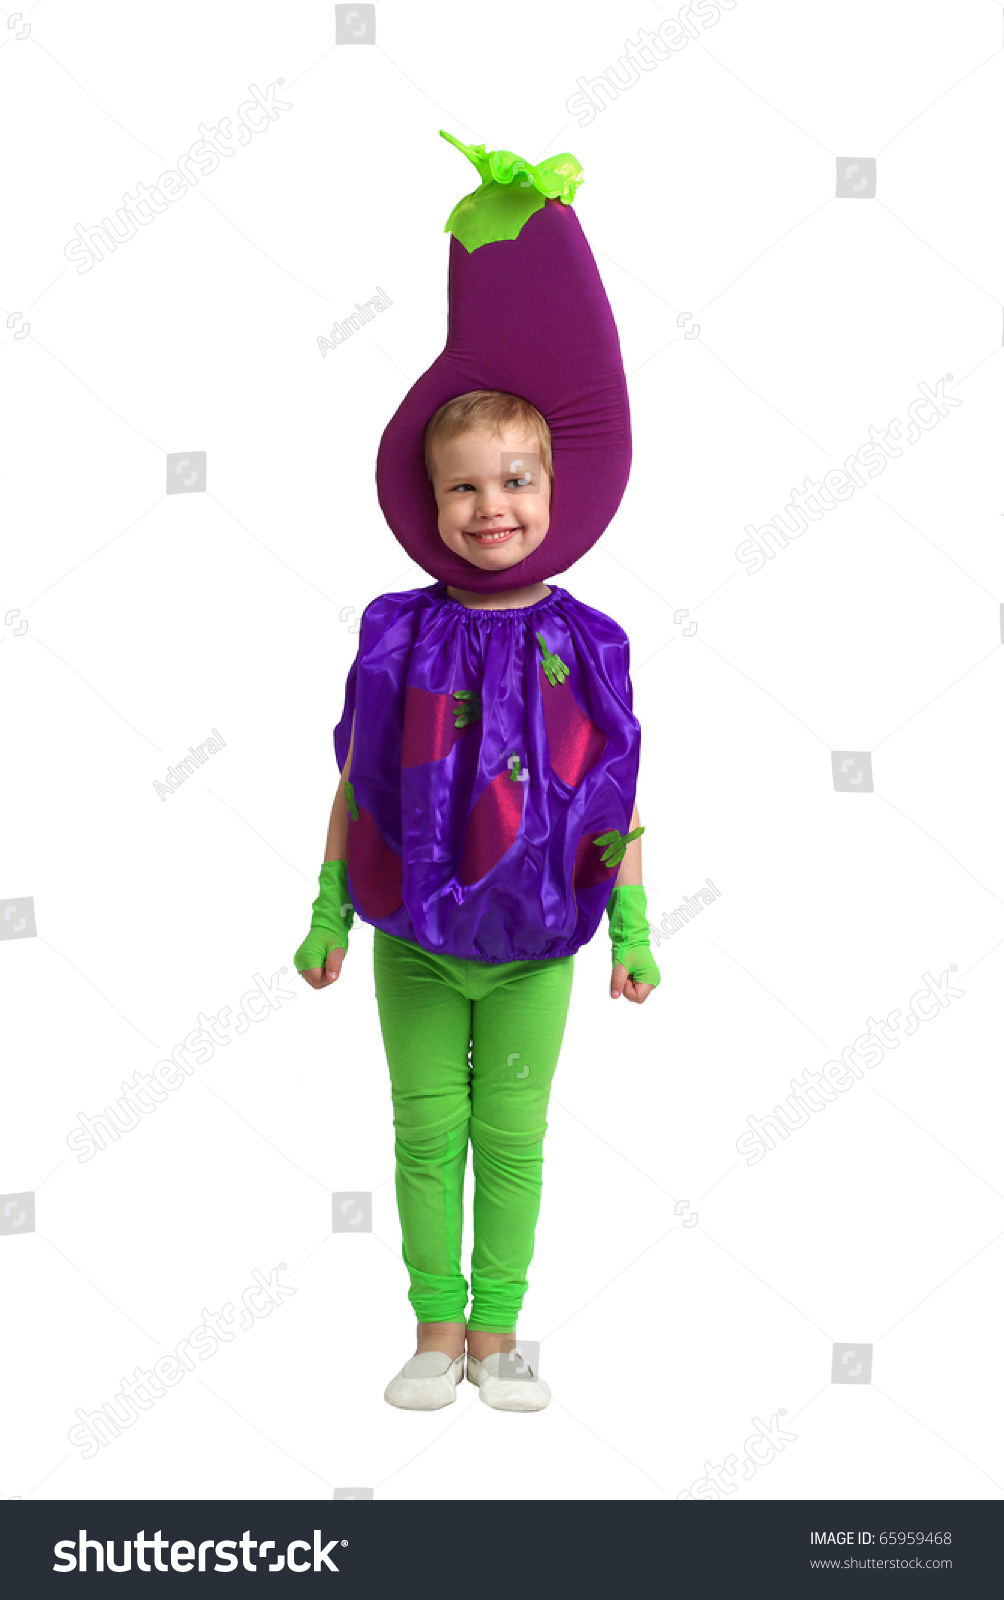 Boy in carrot costume isolated on a white background  sc 1 st  Shutterstock & Boy Carrot Costume Isolated On White Stock Photo (Royalty Free ...